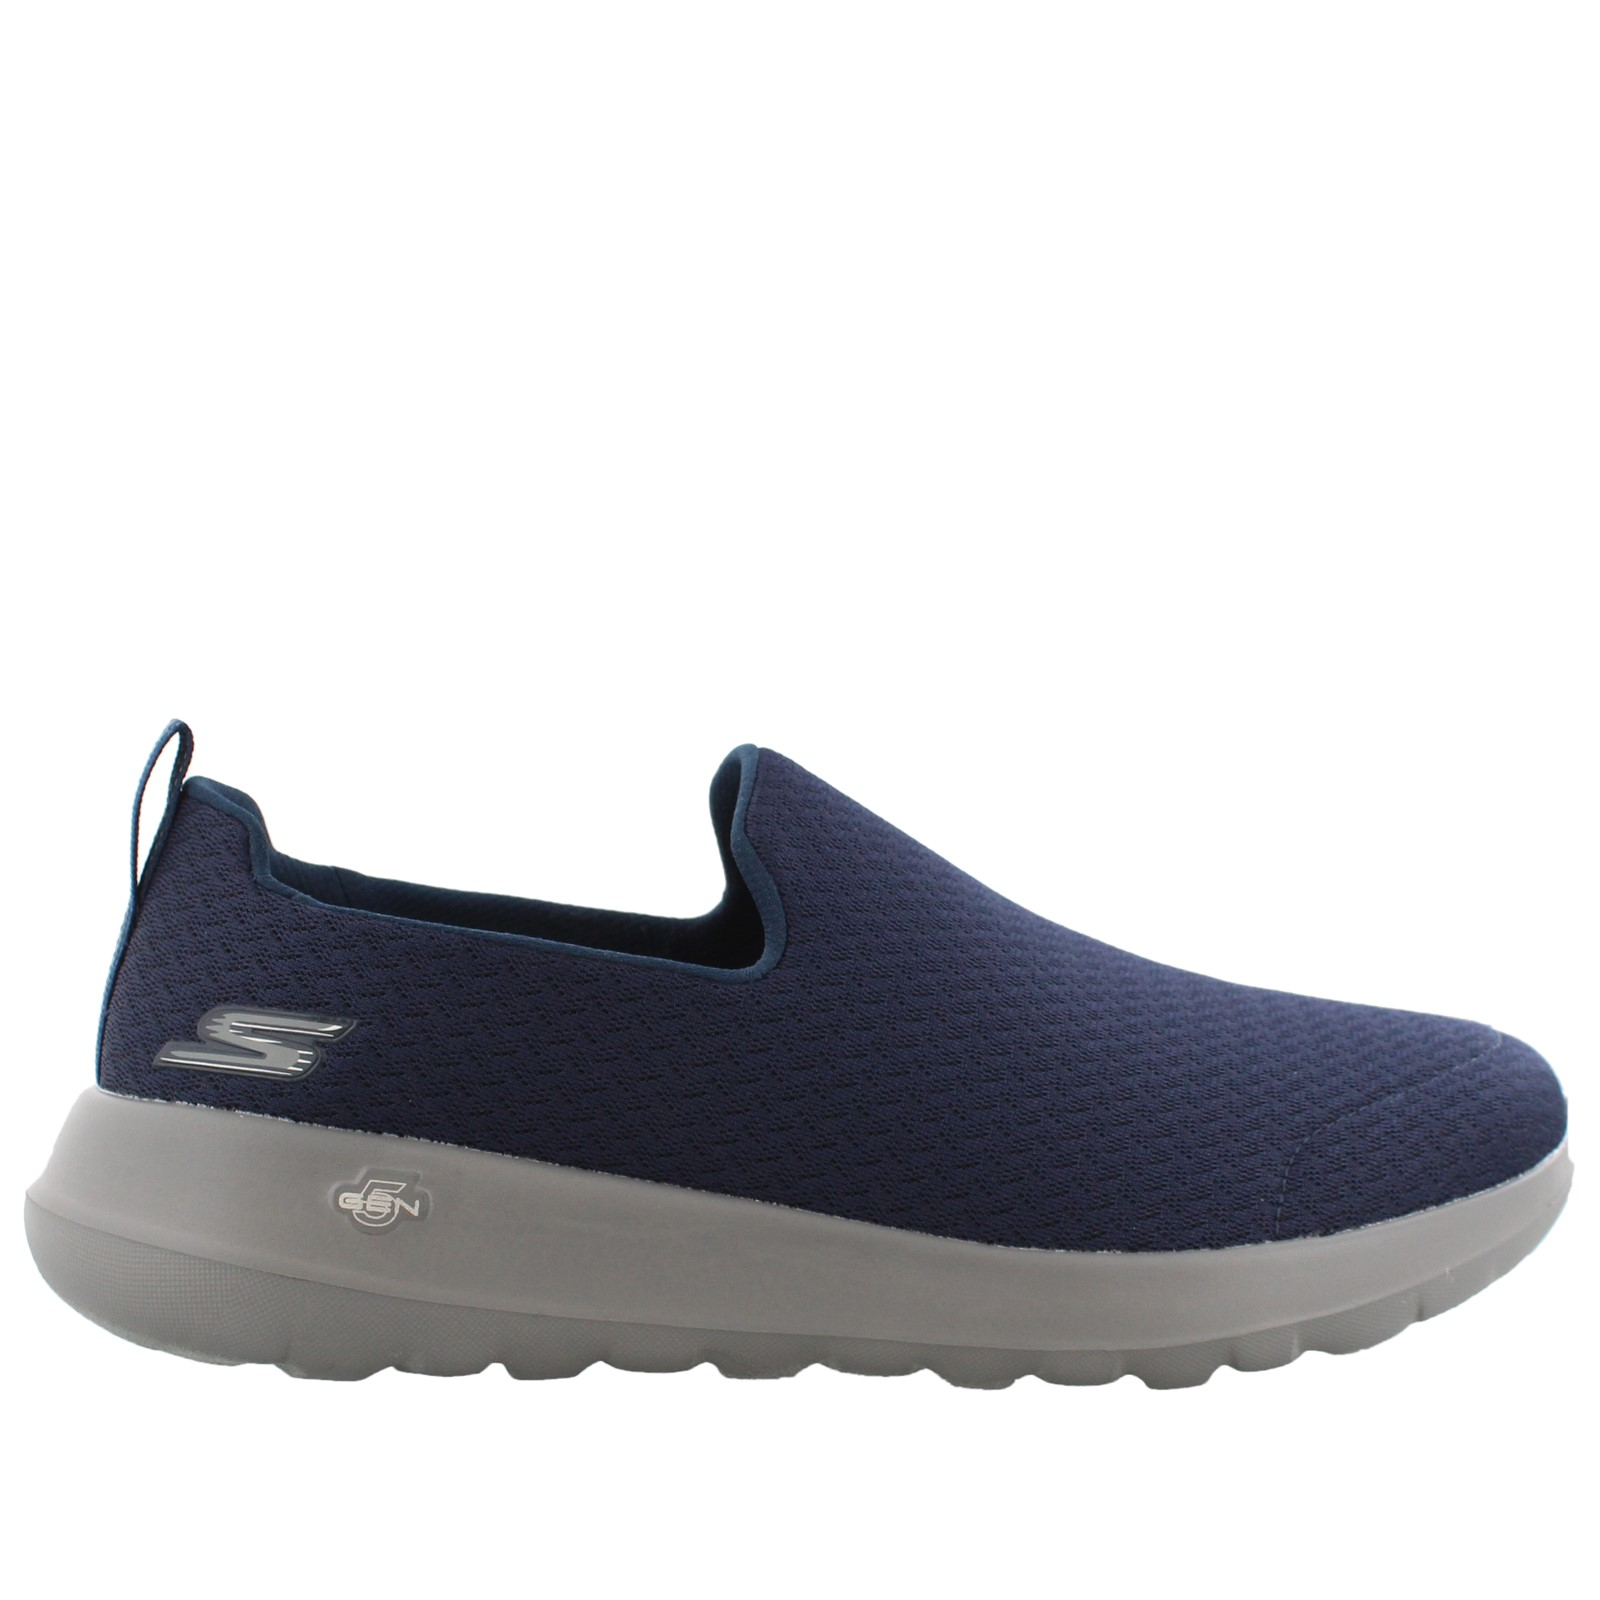 Men's Skechers Performance, Go Walk Max Rejoice